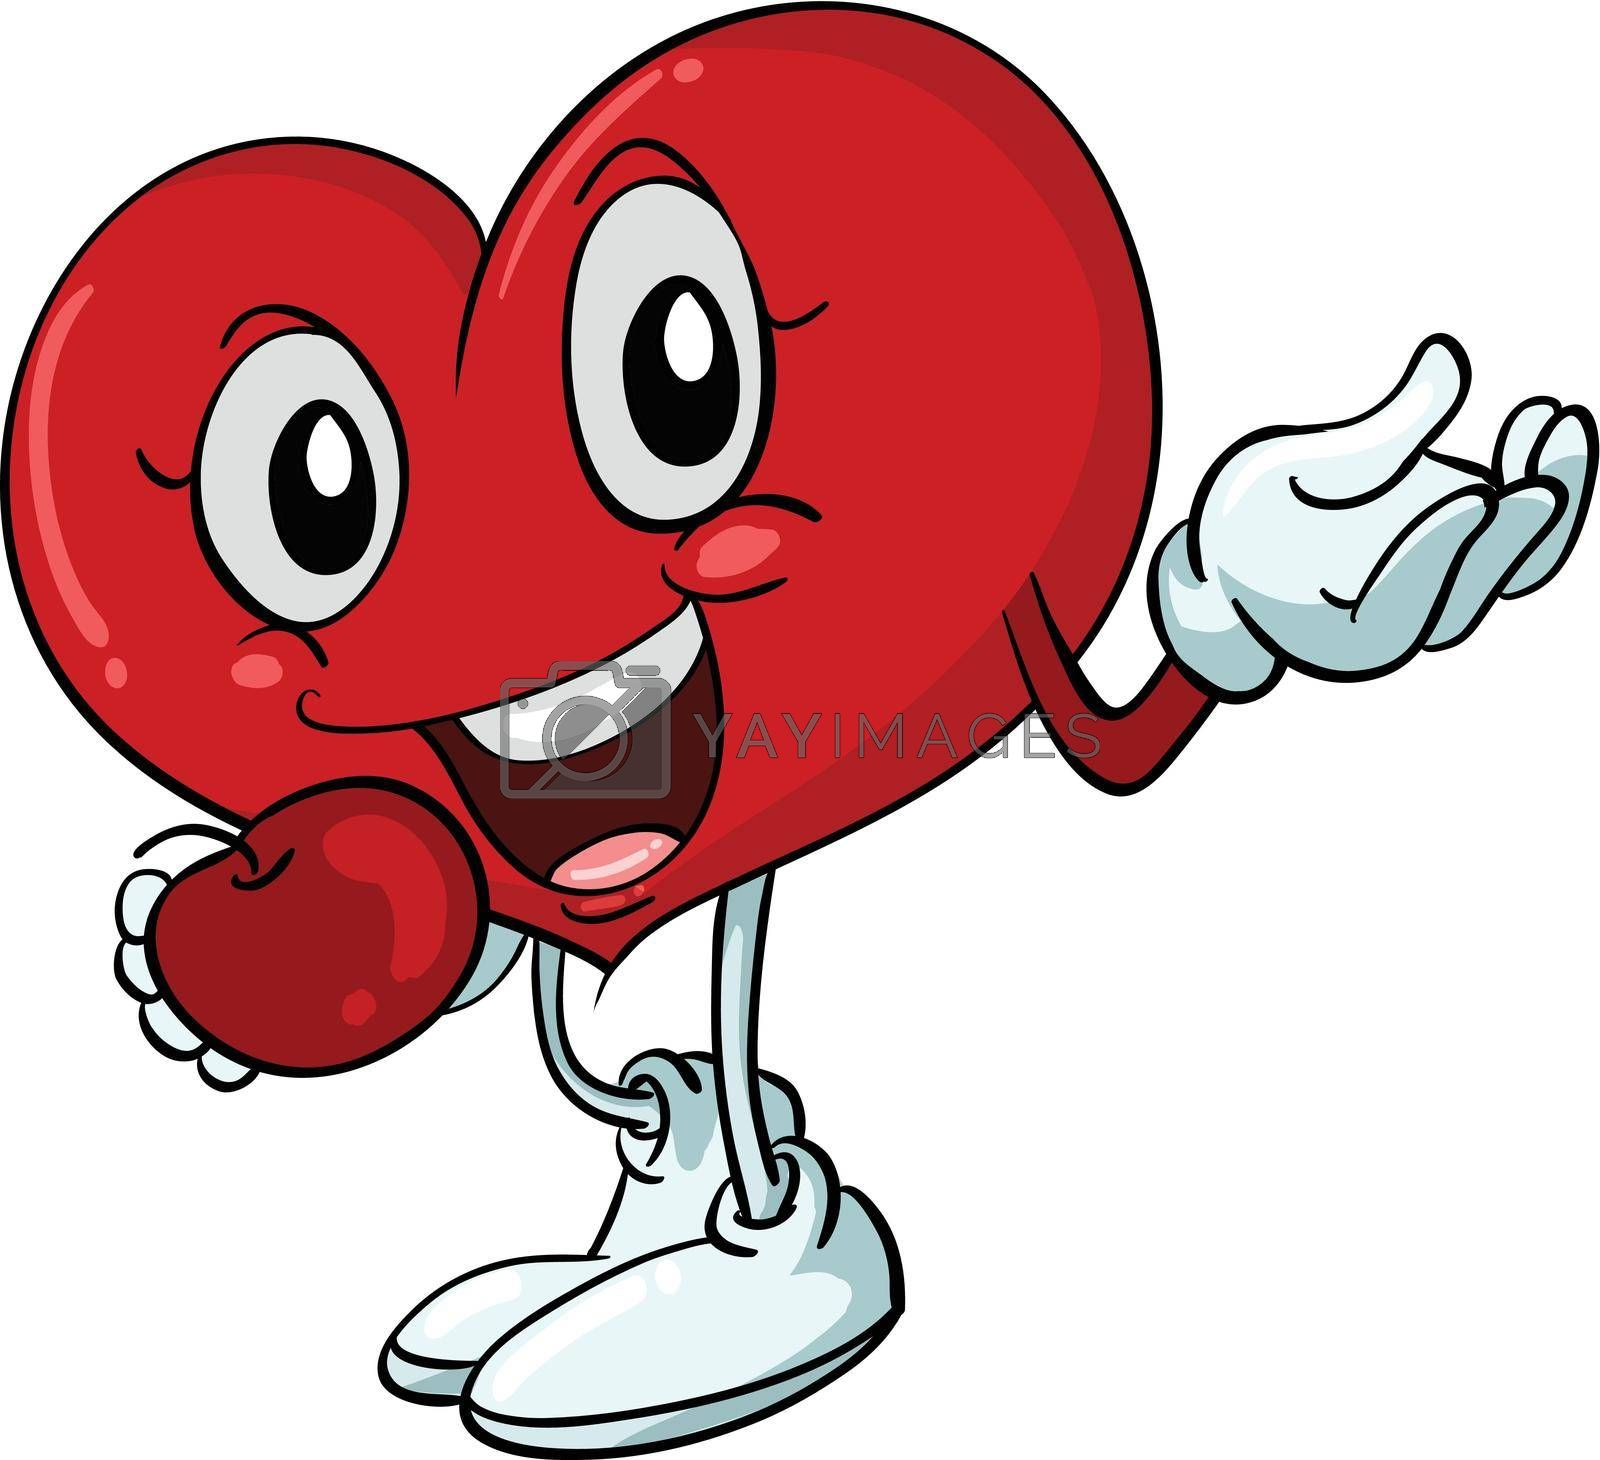 Illustration of a happy heart character